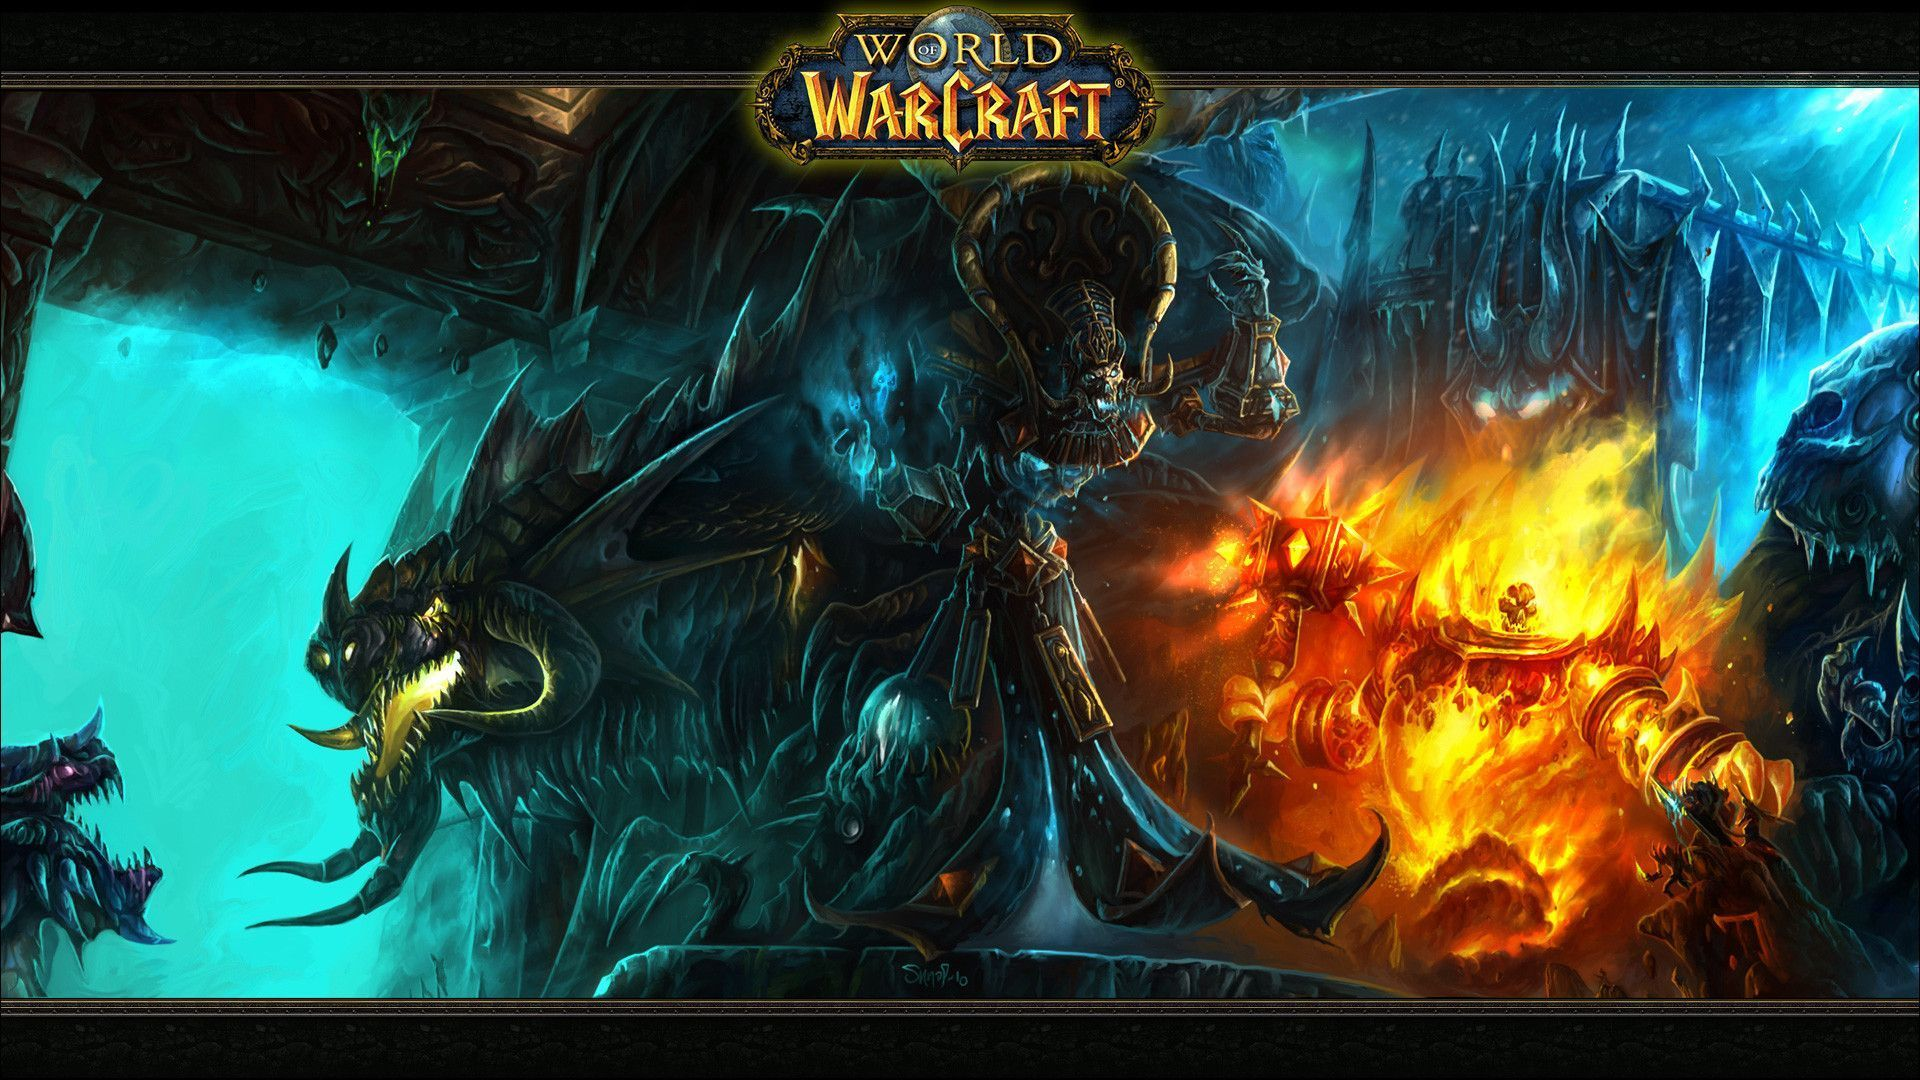 World Of Warcraft Backgrounds Wallpaper HD Wallpapers